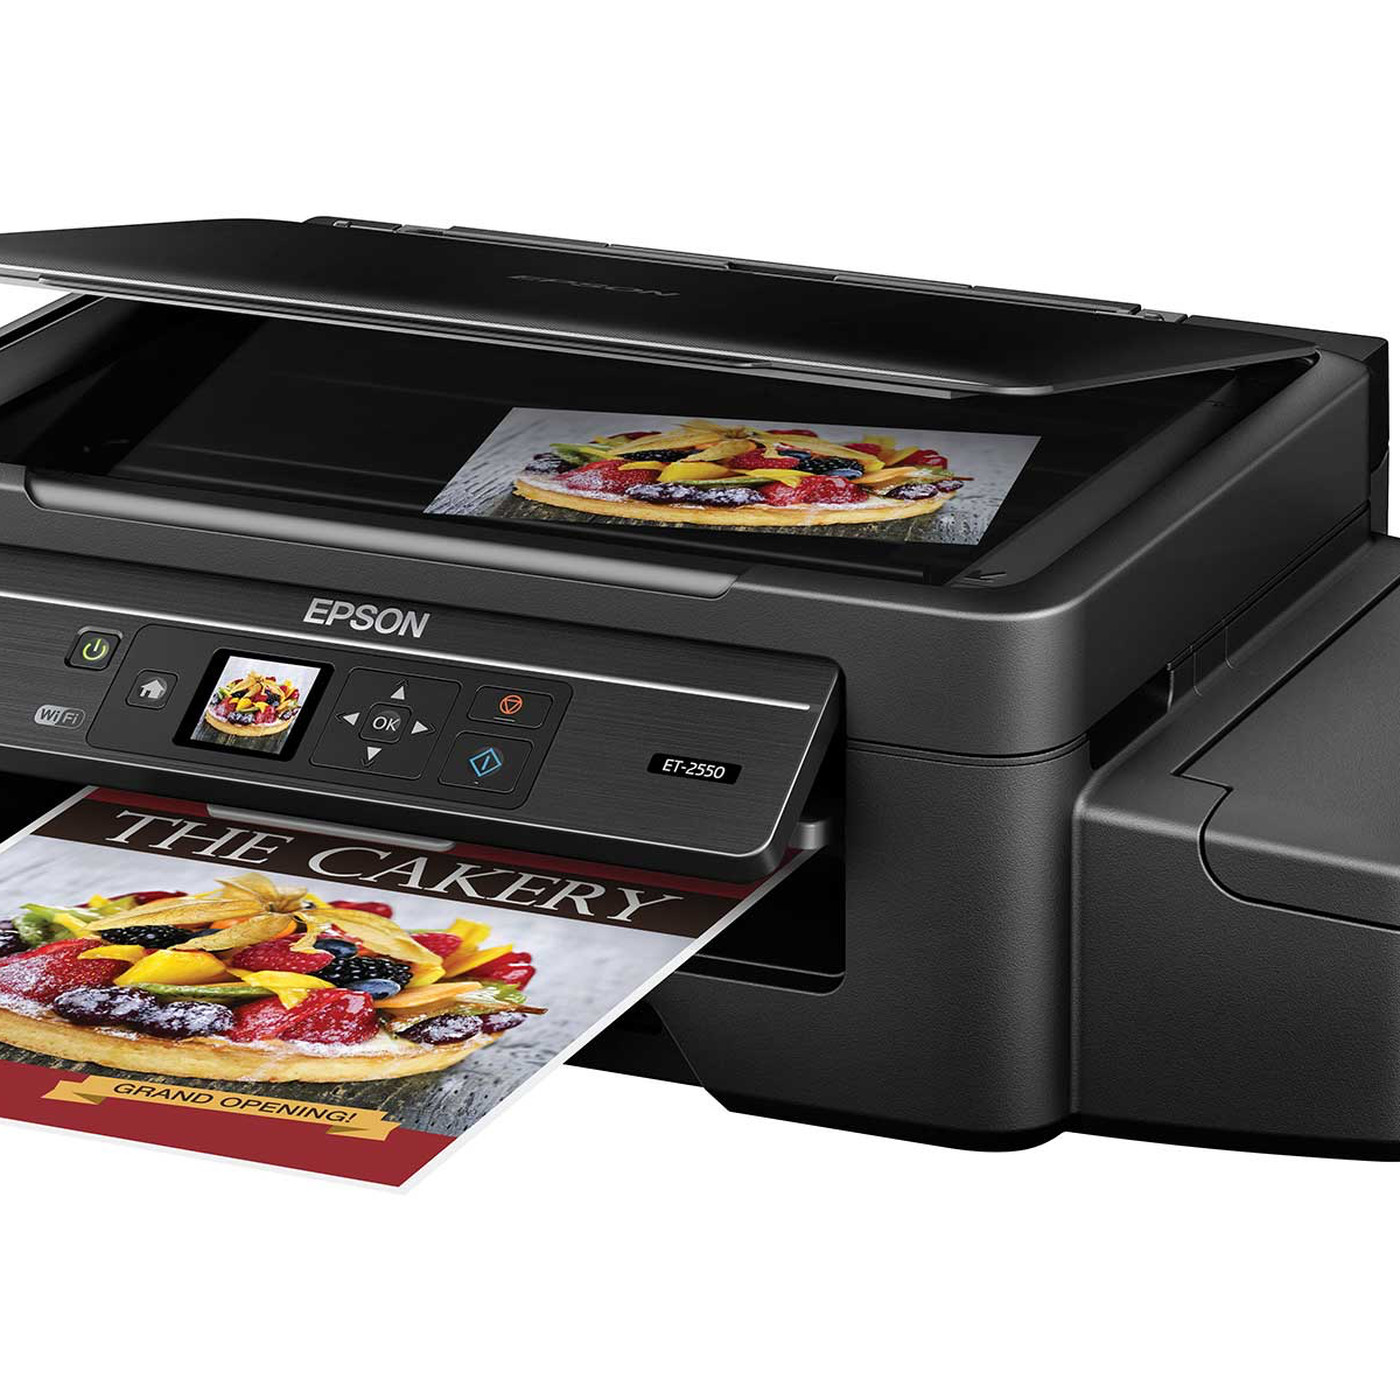 Epson's new printers will make ink cartridges a thing of the